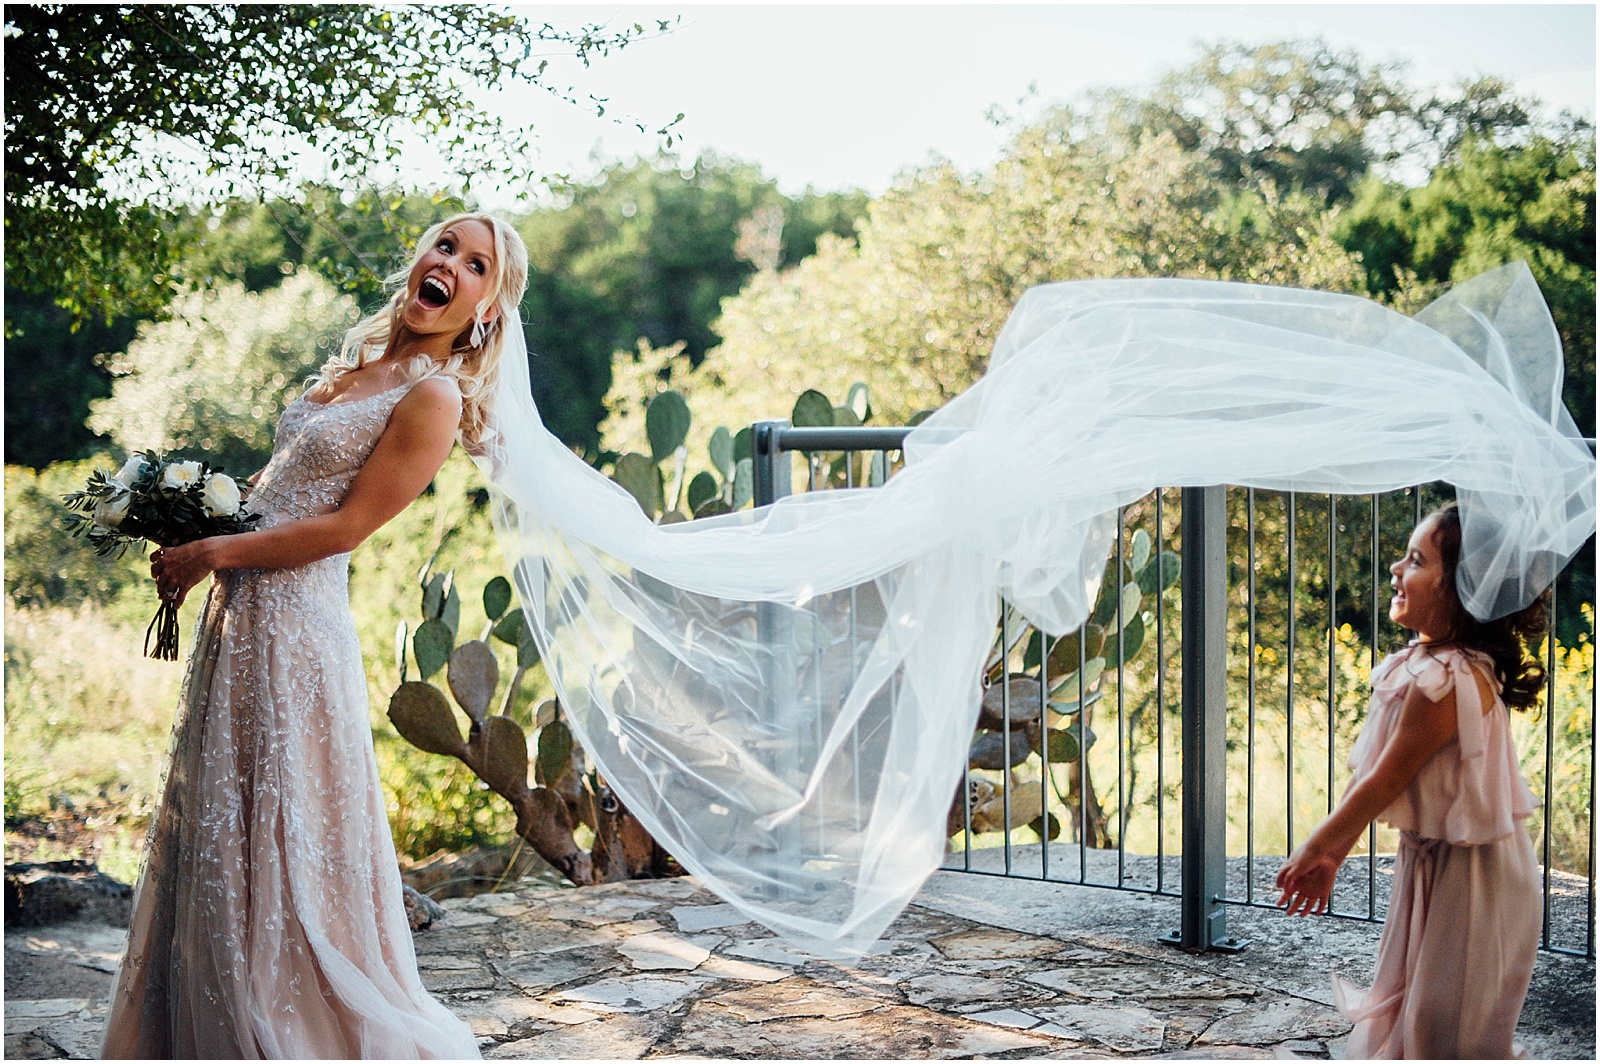 Bride with Veil Blush Pink Bridal Details at Lady Bird Johnson Wildflower Center Austin Texas Wedding